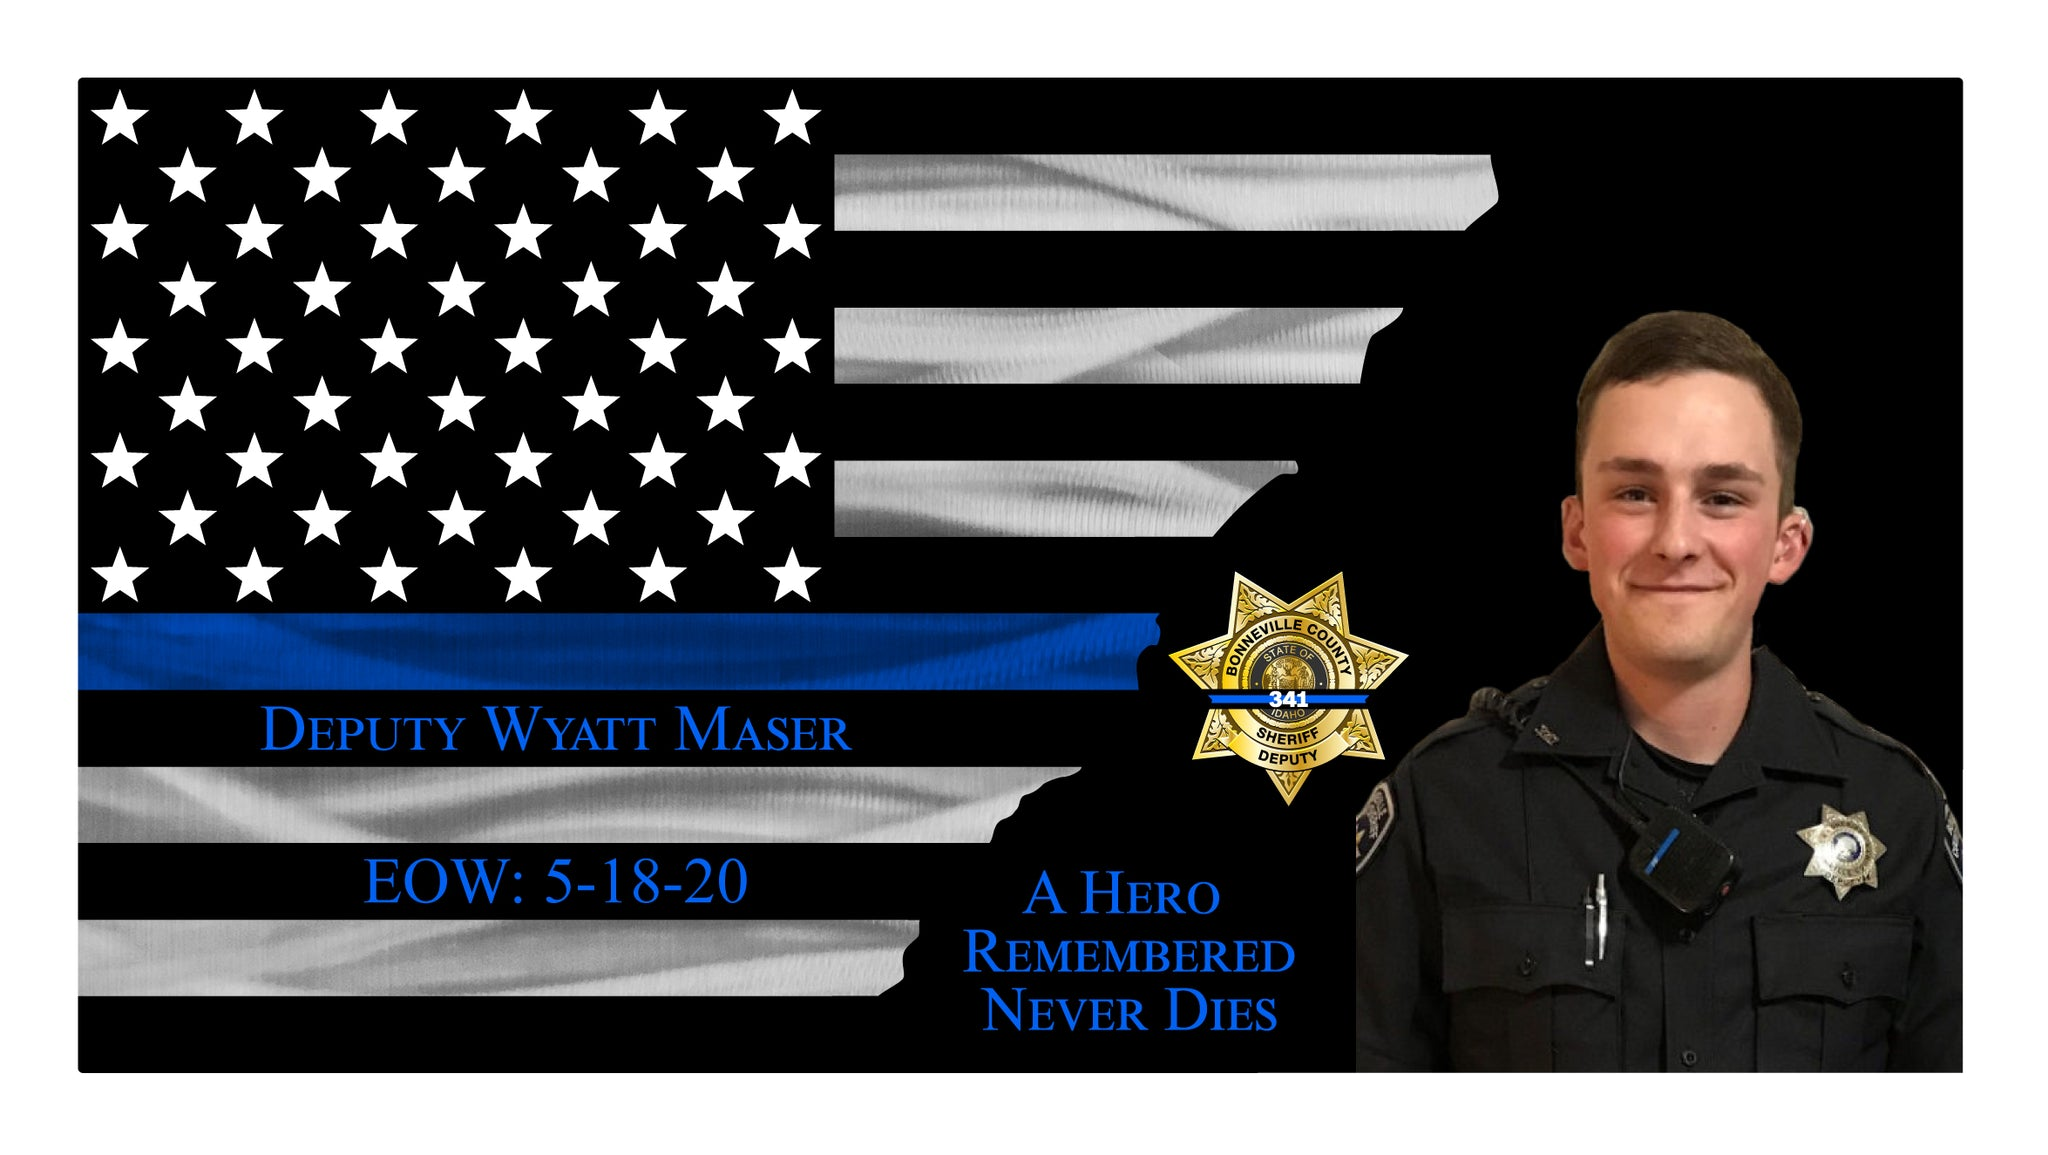 Deputy Wyatt Maser of Bonneville County Sheriff Memorial Thin Blue Line Flag